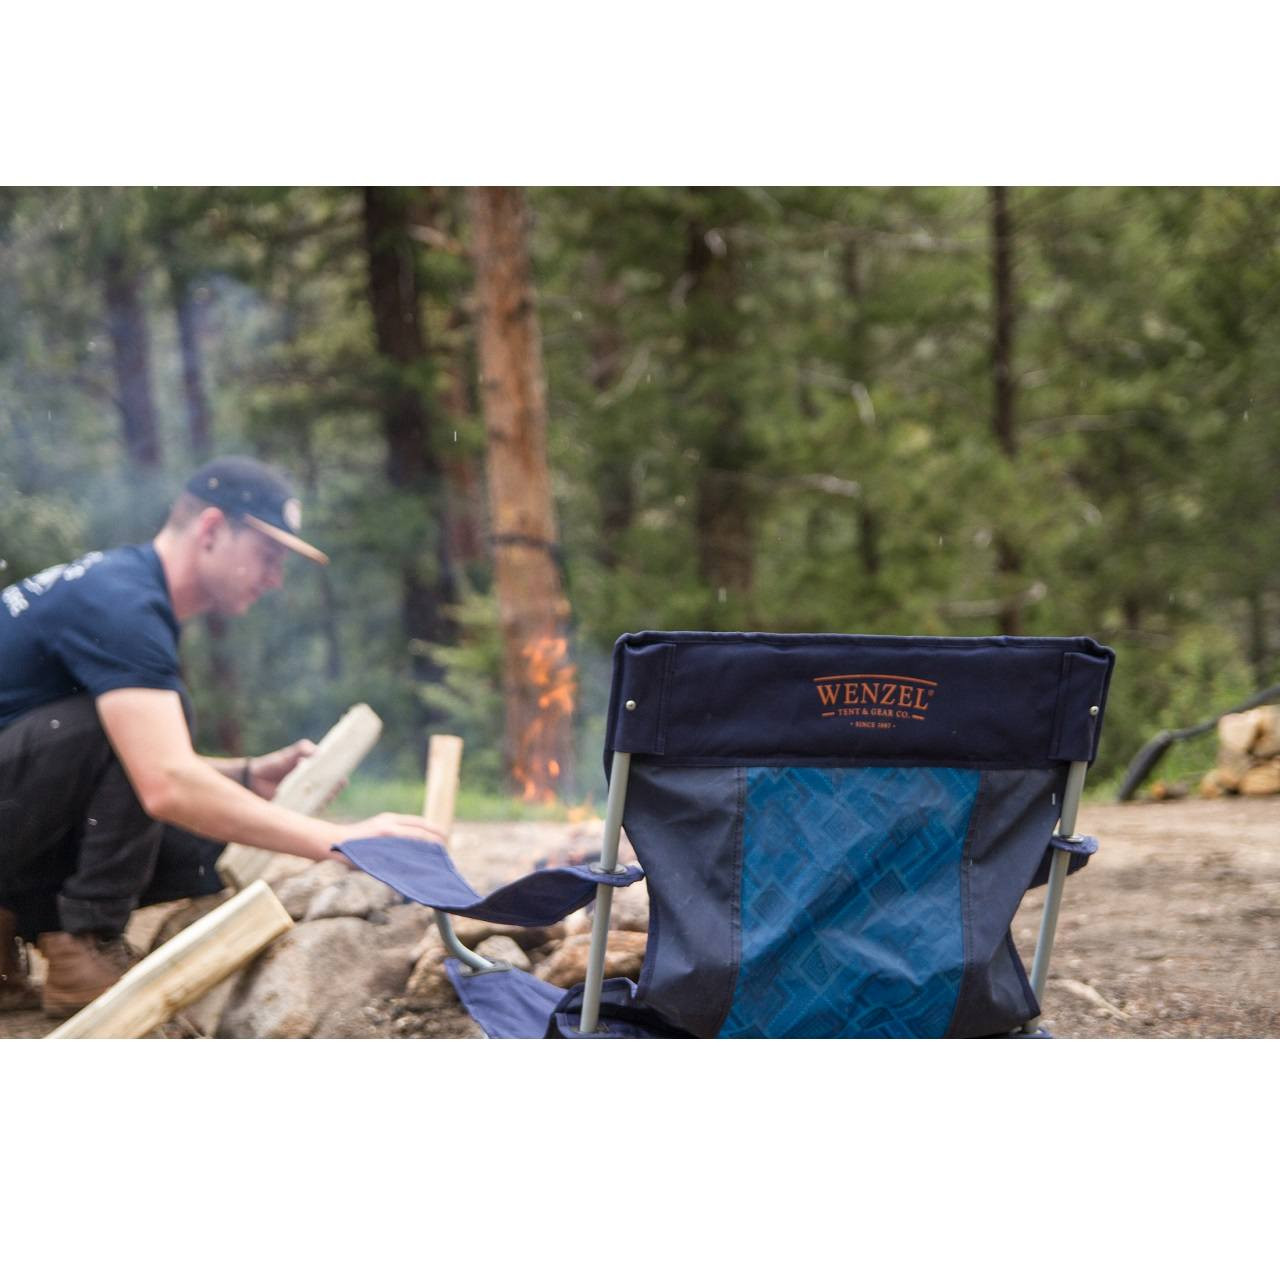 Man outside putting wood onto a fire with a Wenzel Quad Chair setup next to him